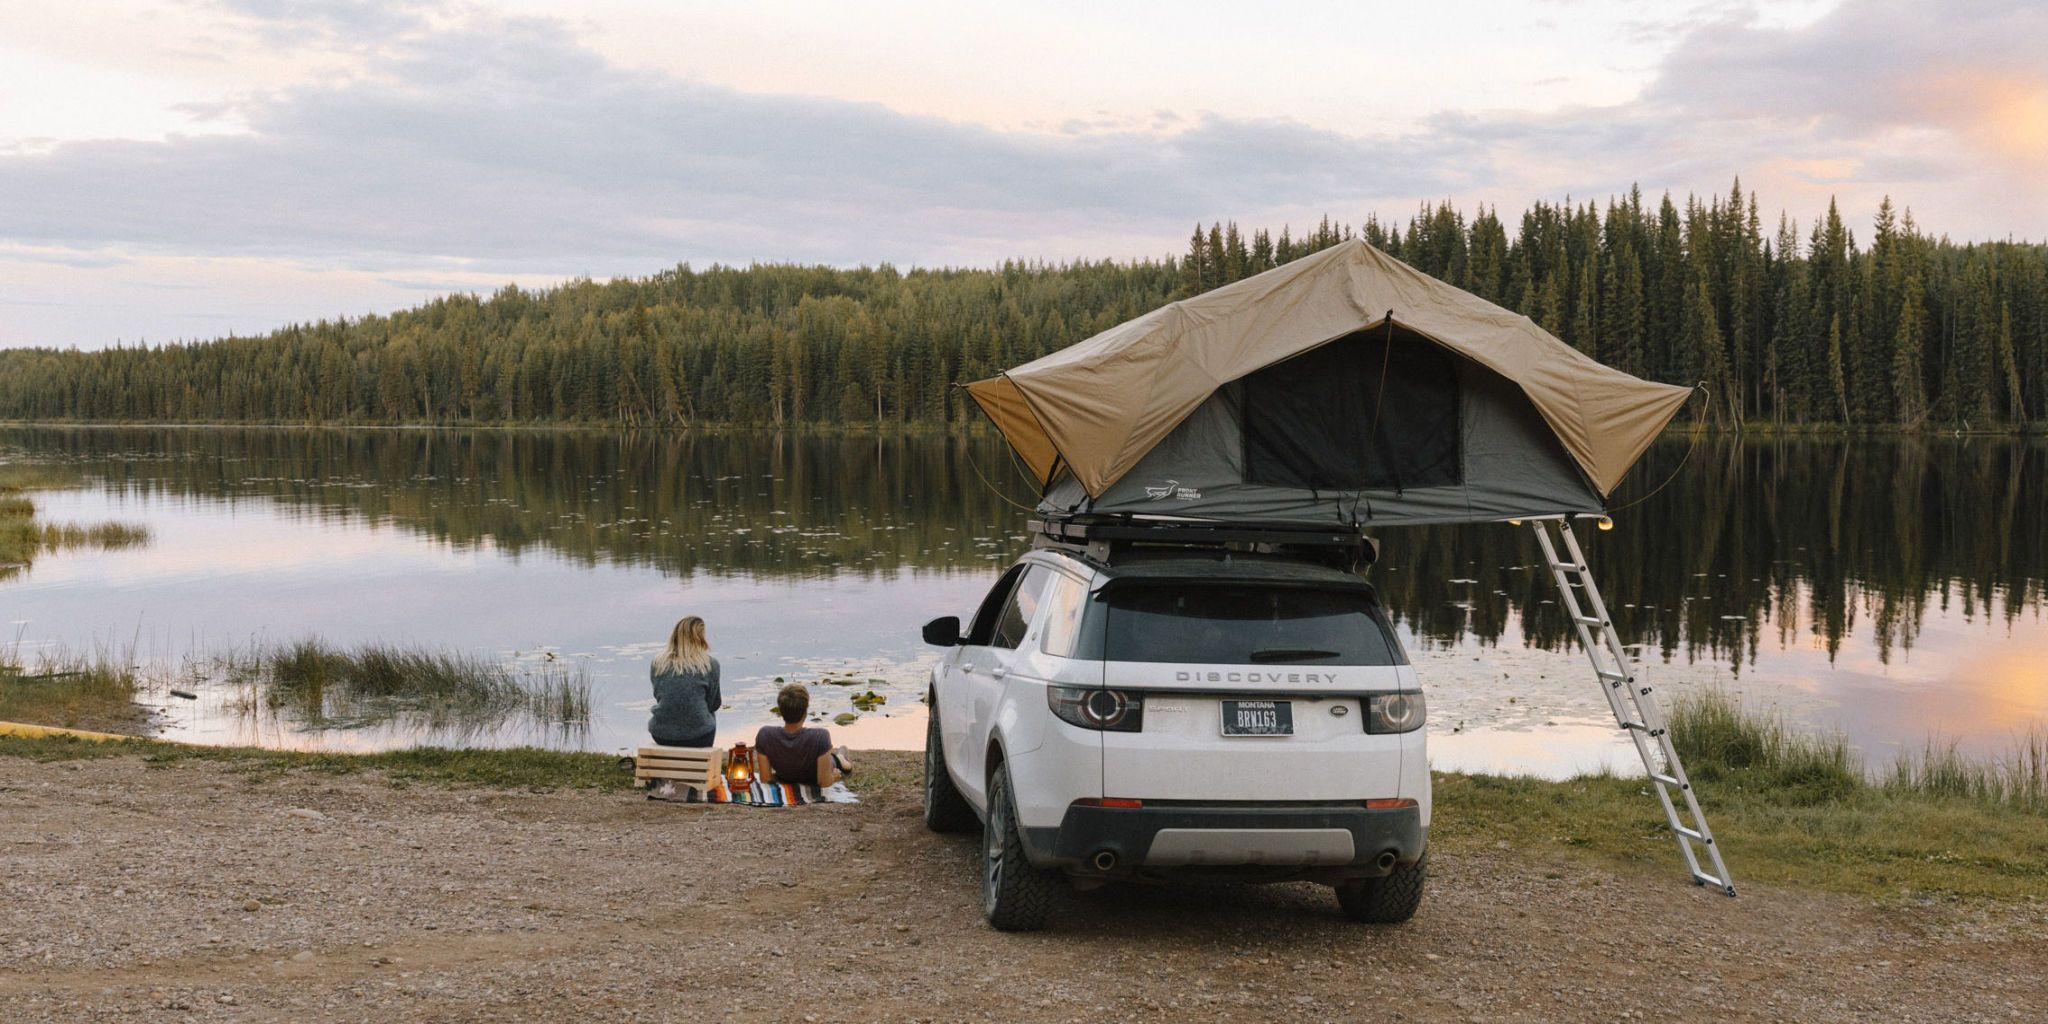 Roof top tents assemble in seconds which allow you more time around the c&fire and less time fiddling with tent poles. : 4 man roof top tent - memphite.com